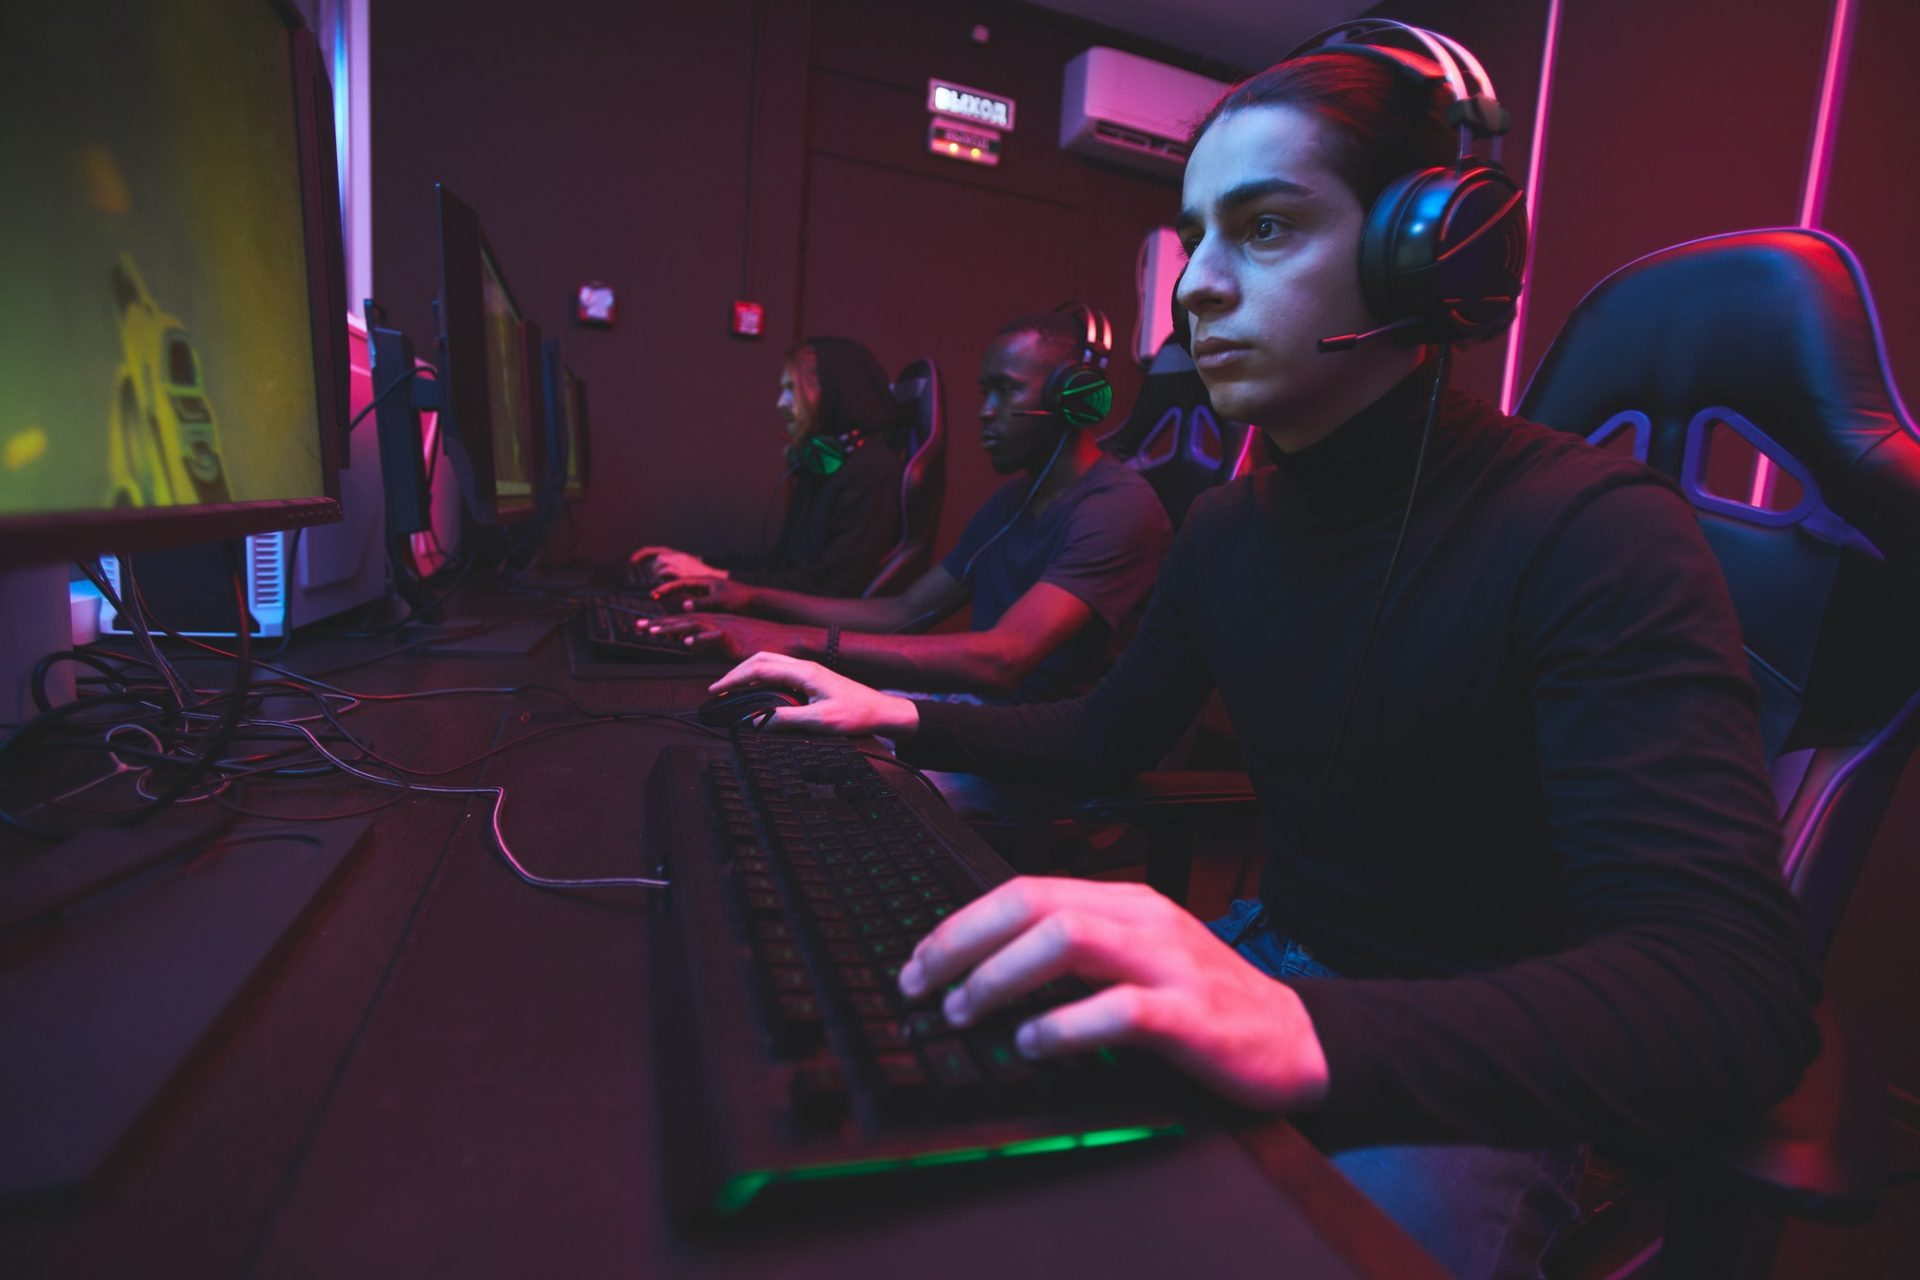 E-sports gamers playing online game via network